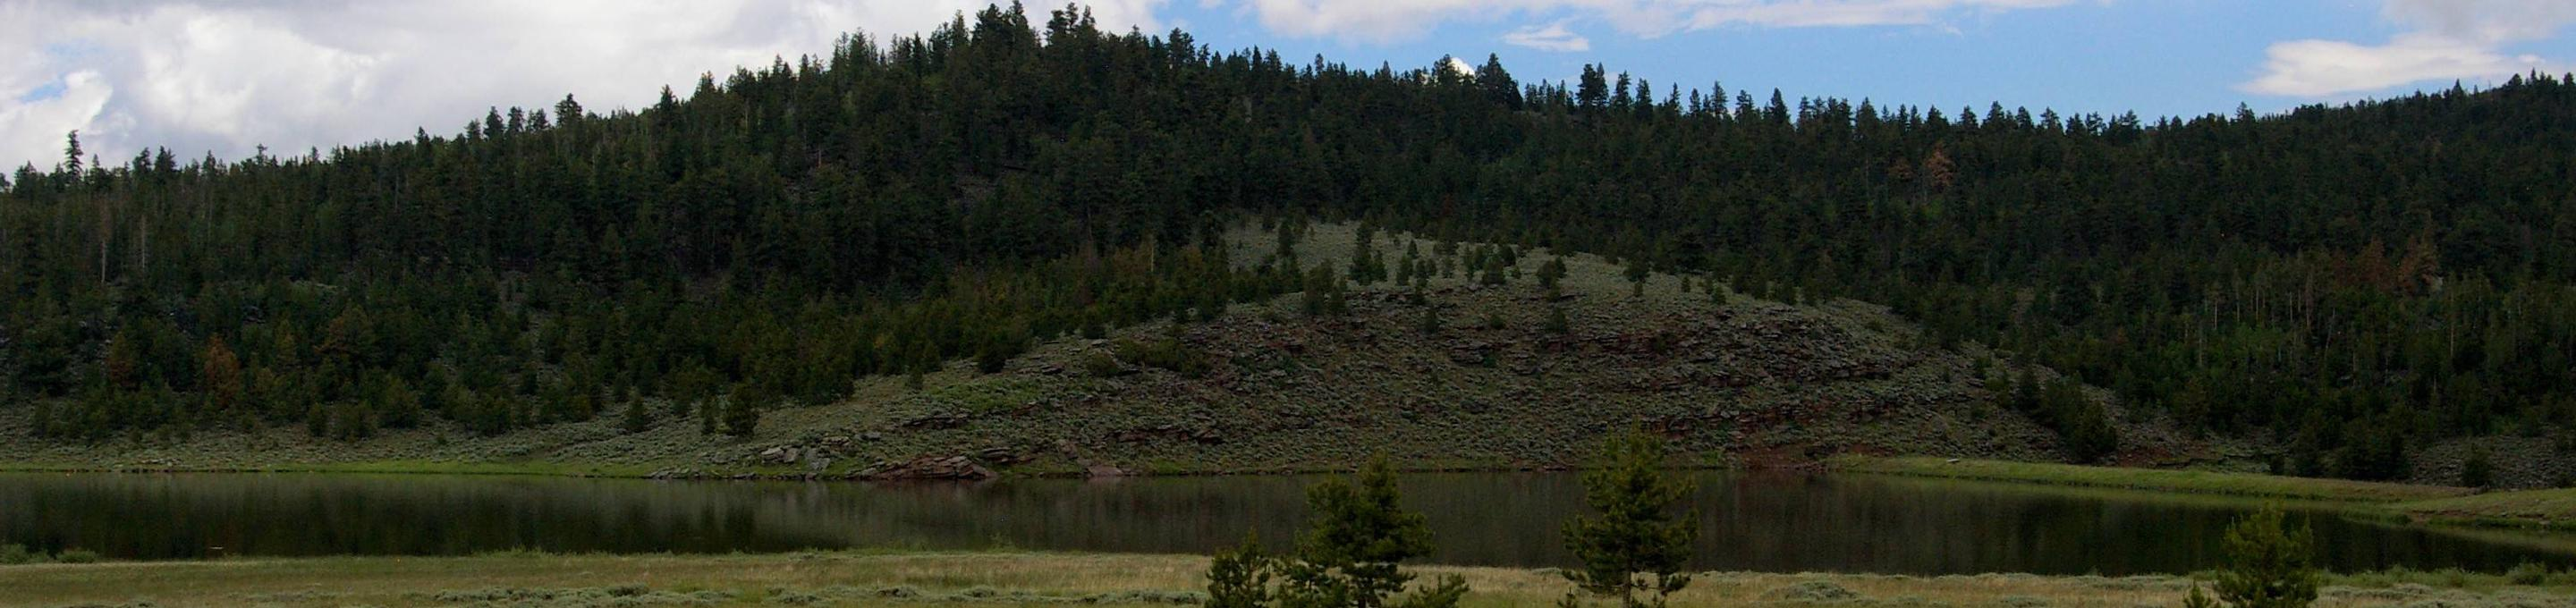 Lake with green grassyh banks and mountain with pines in the background.Browne Lake